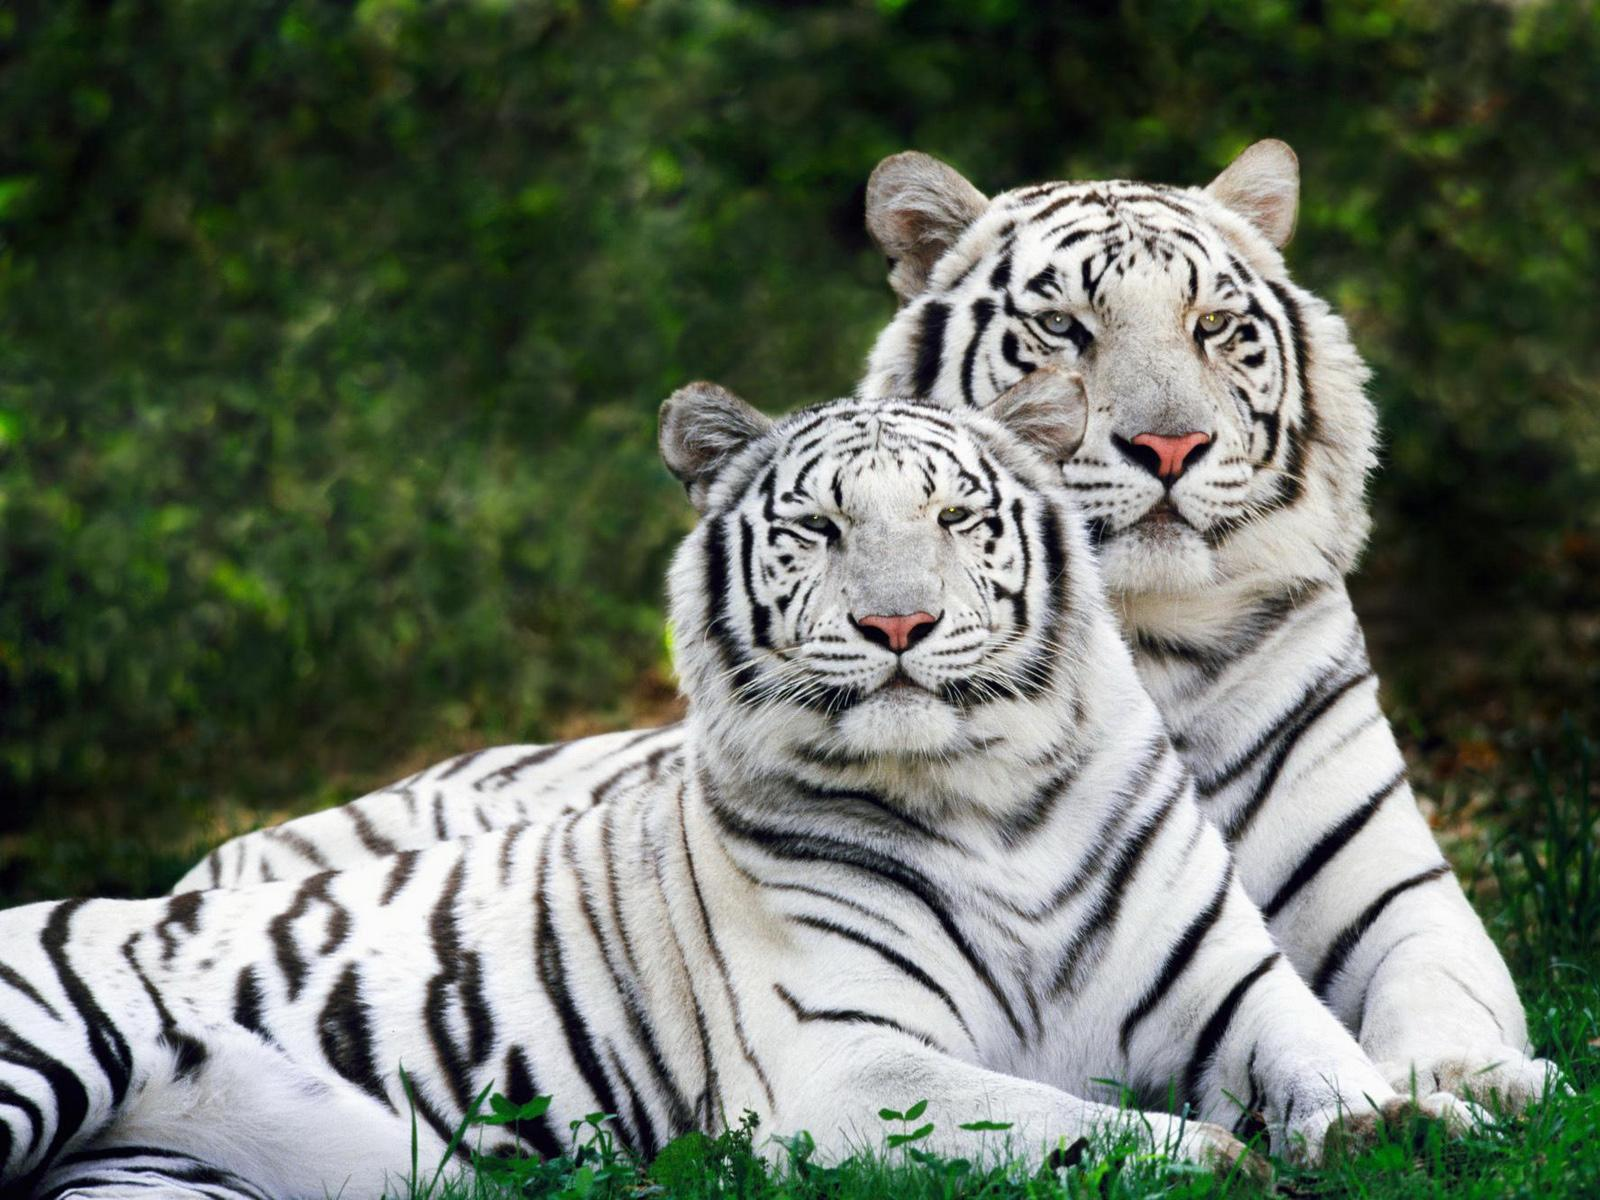 White Pair tiger images